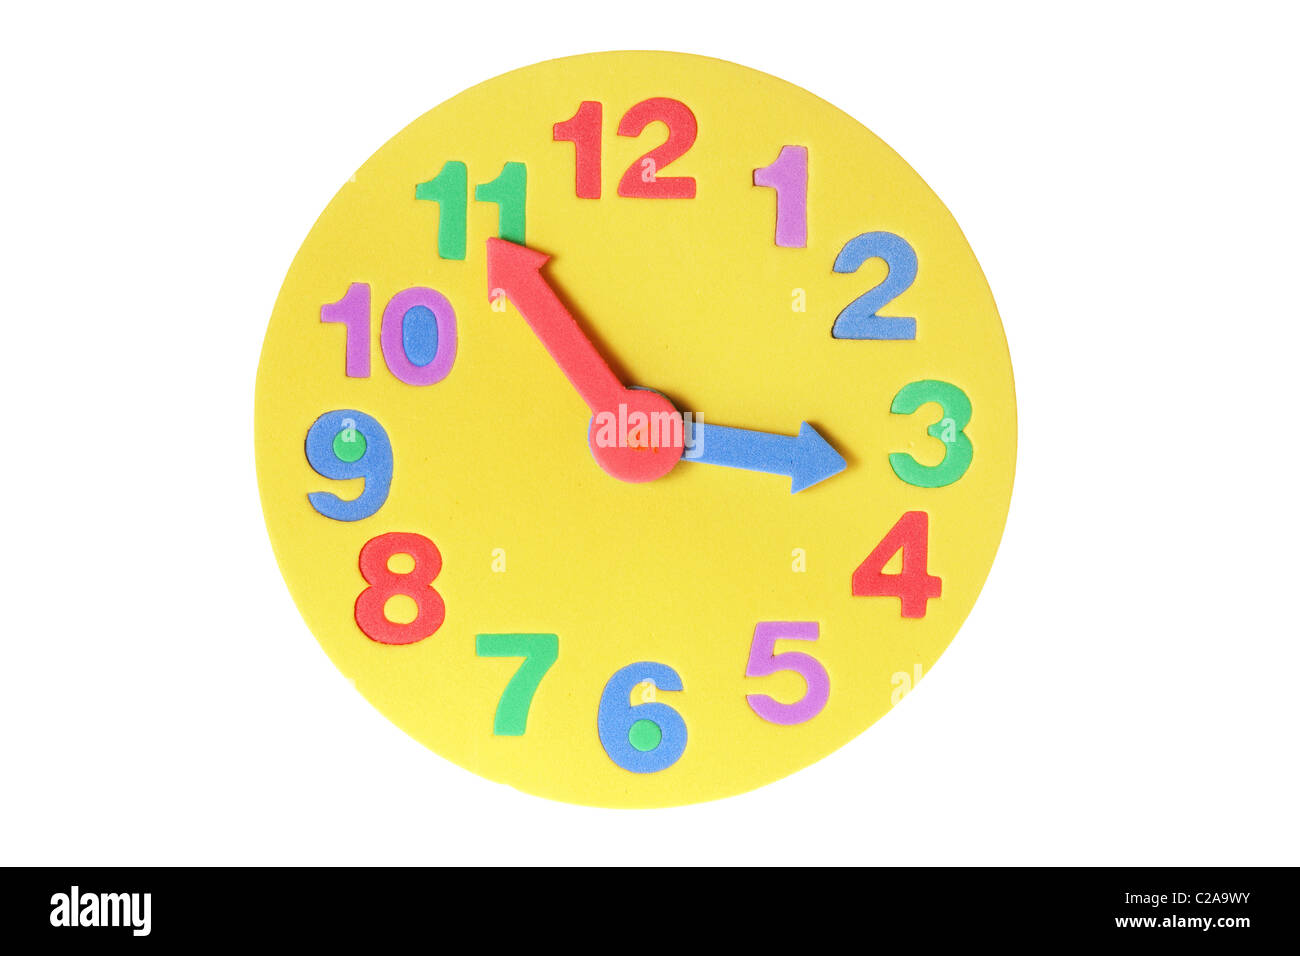 Toy Clock - Stock Image